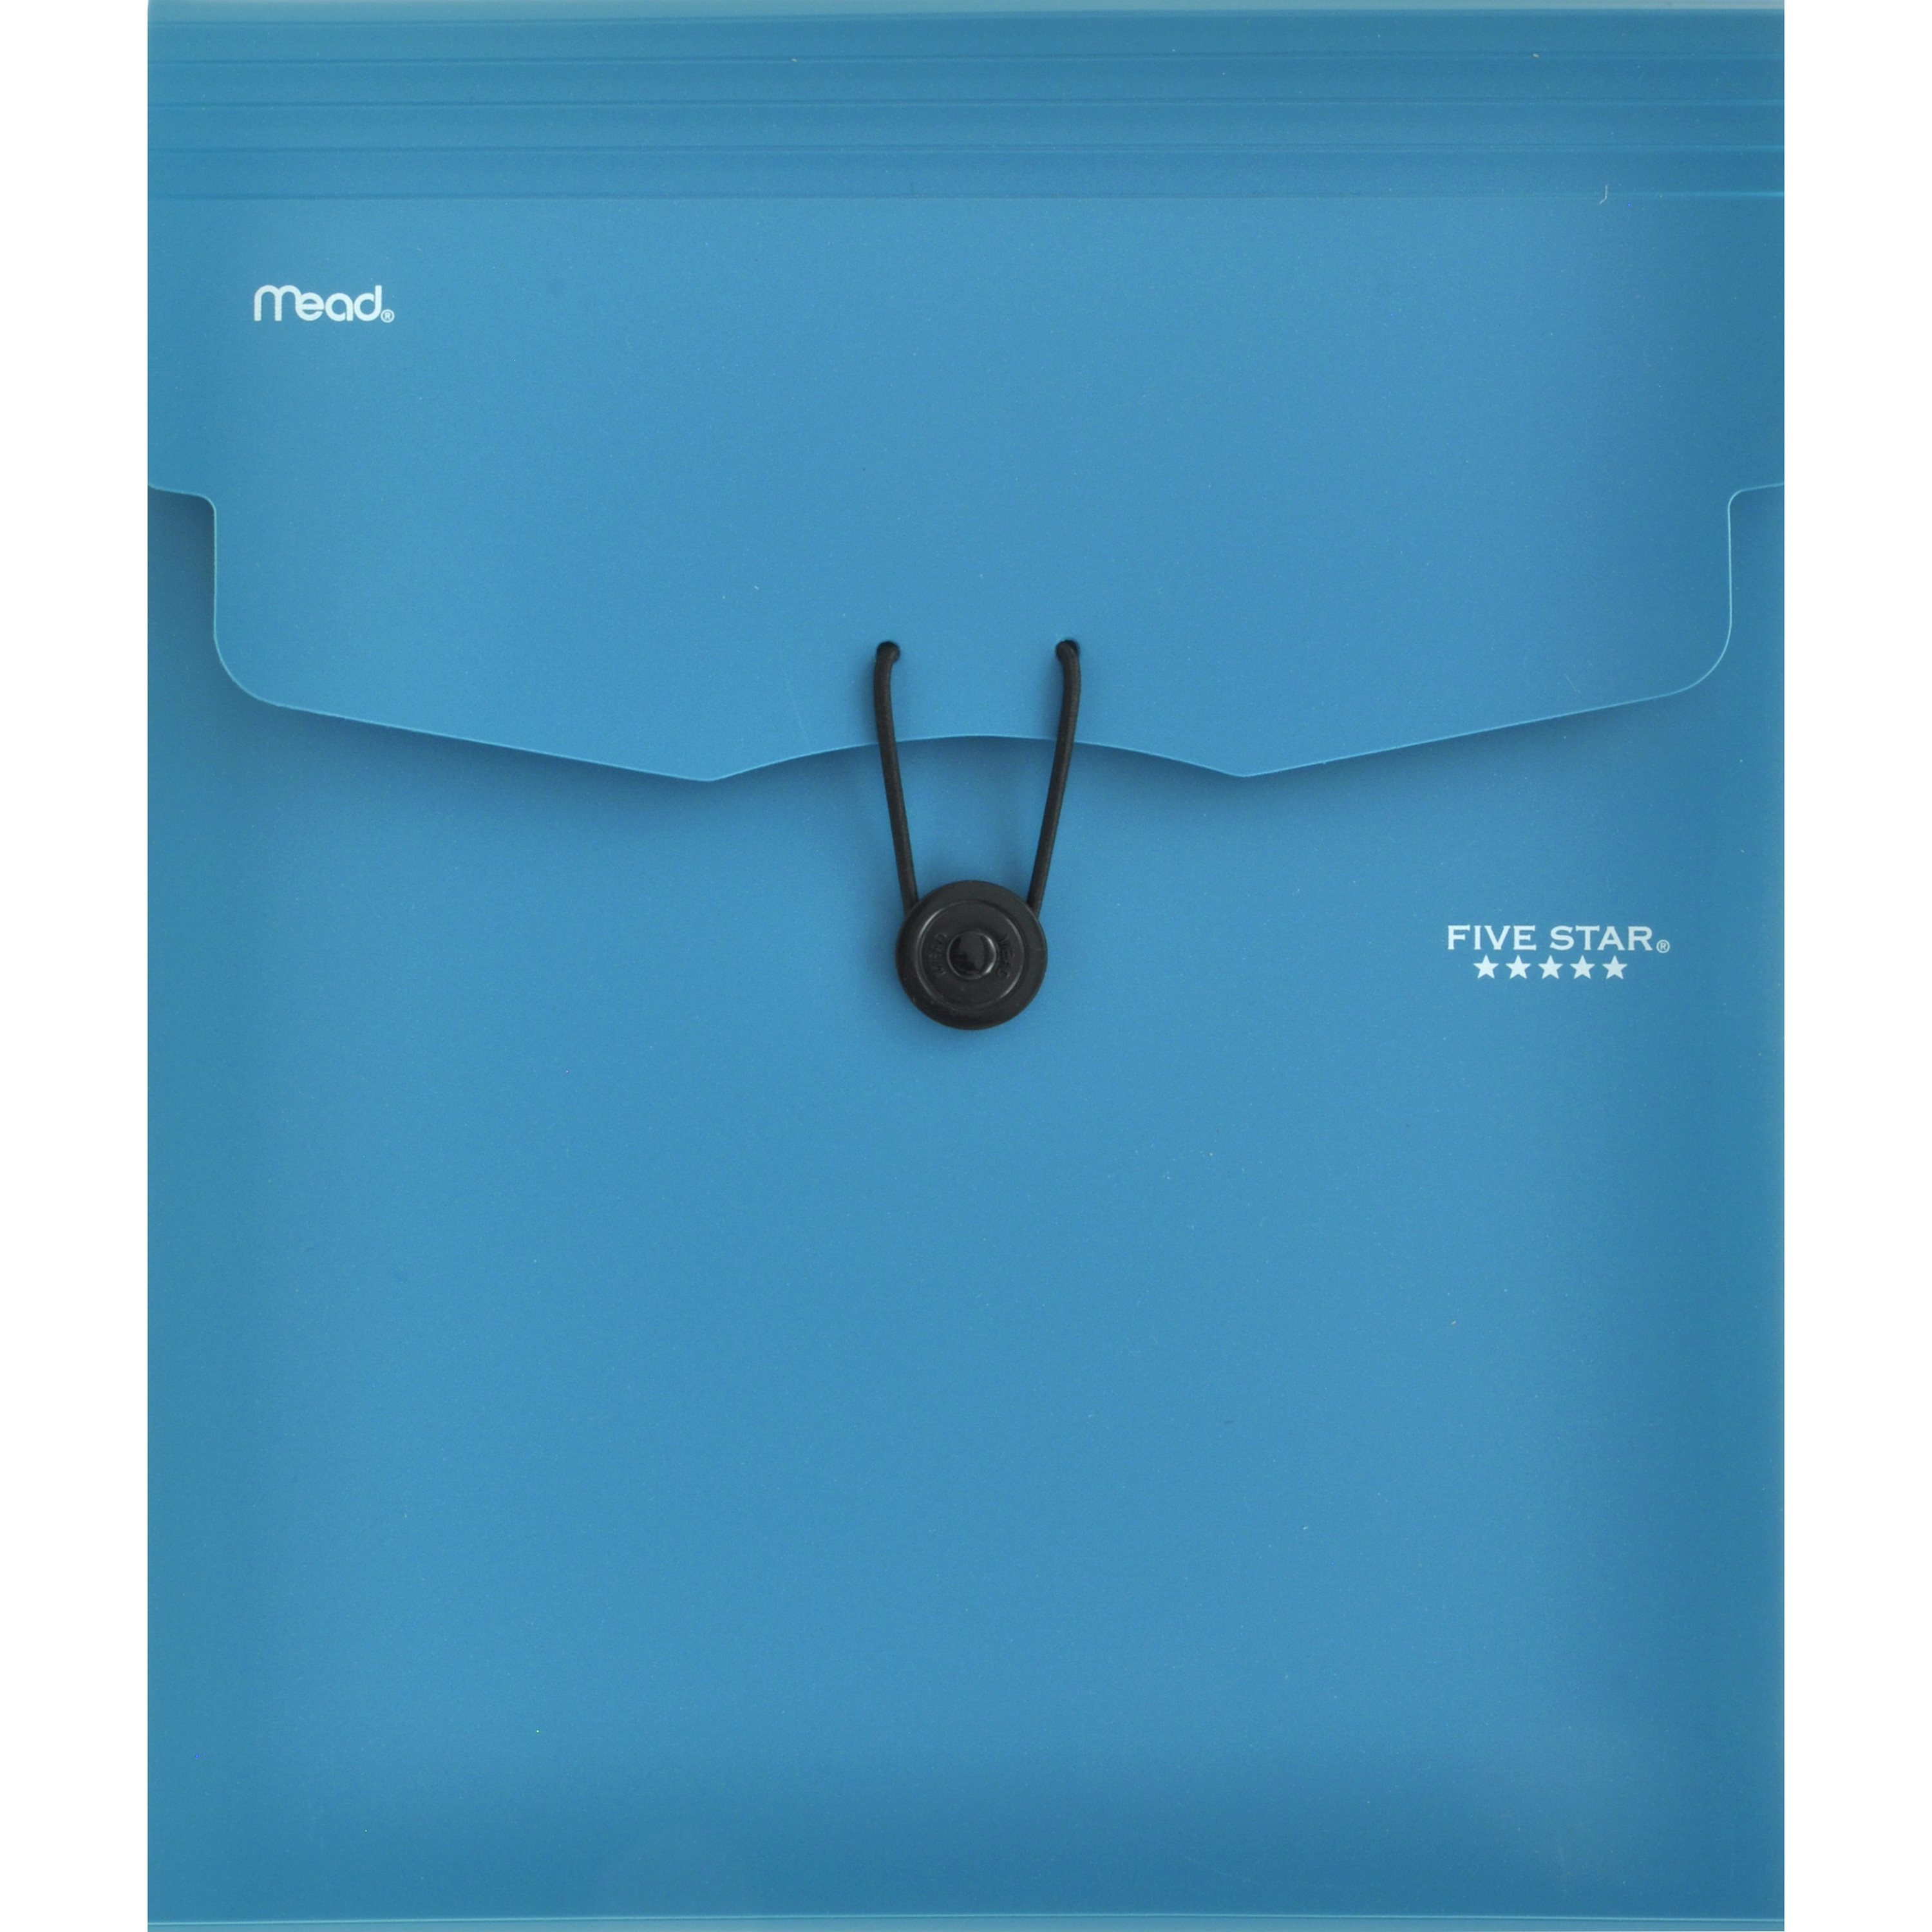 """Five Star 5-Pocket Expanding File with Removable Files, 12 1/4"""" x 10 1/4"""", Teal"""